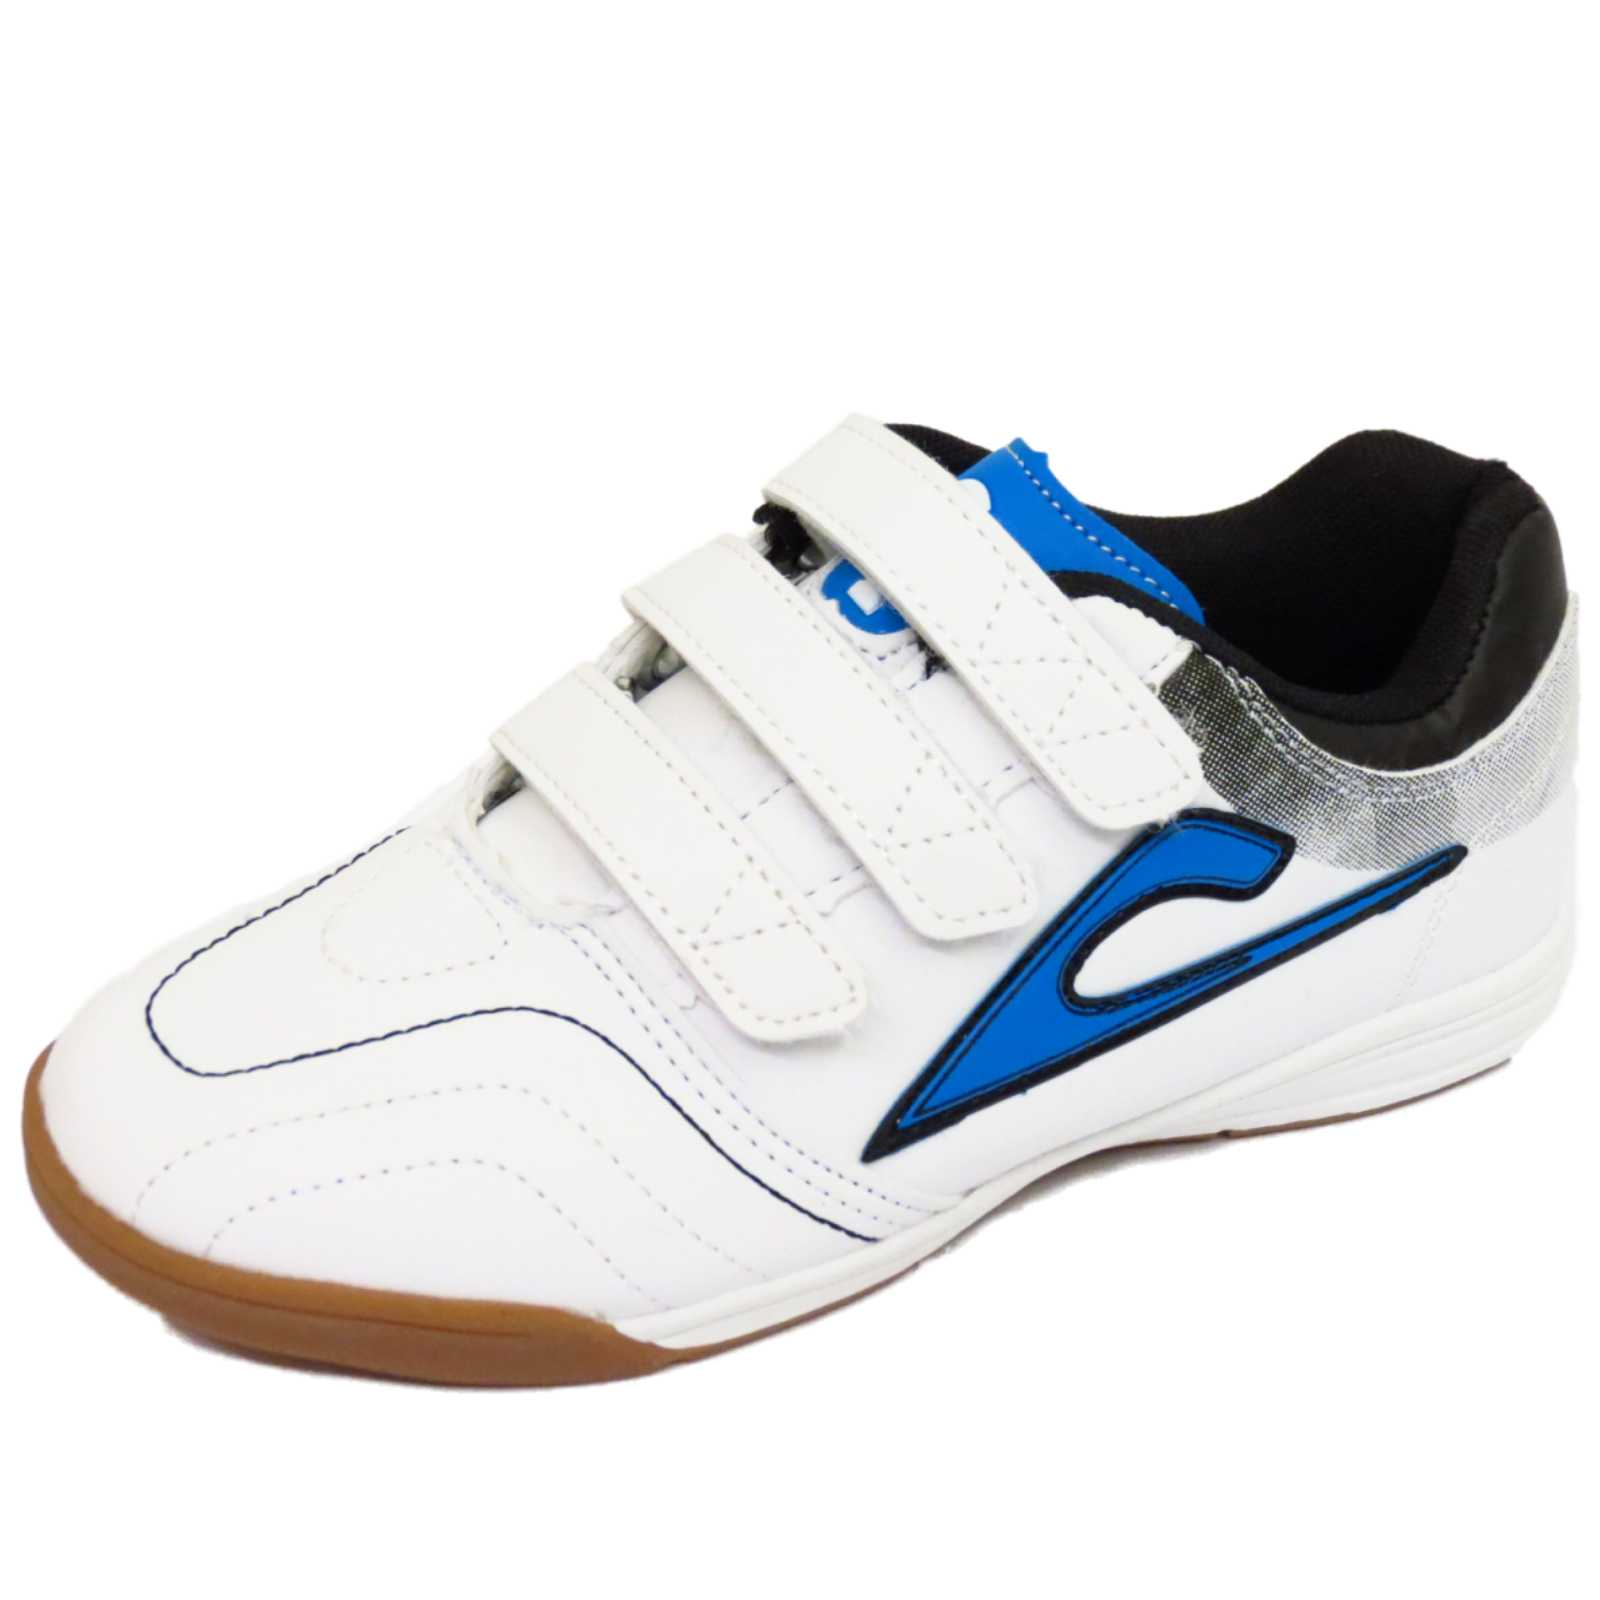 boys childrens white casual trainers school shoes